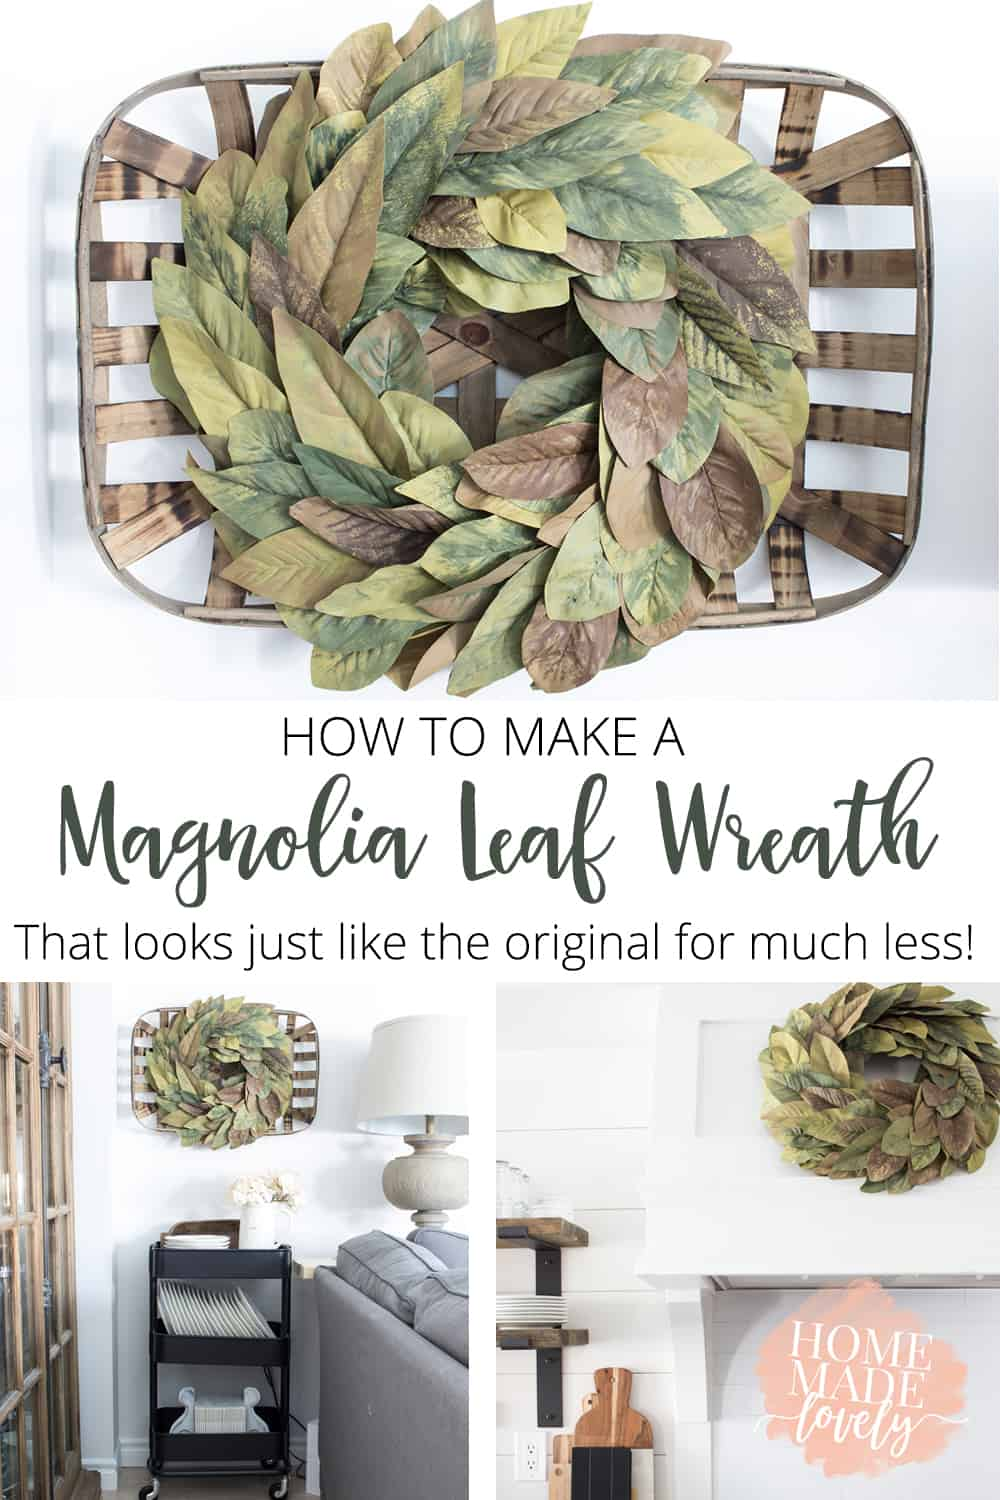 Everyone loves the Fixer Upper faux magnolia leaf wreath, right? Here's how to make one for less that looks just like the original (and not shiny like other DIY versions)!